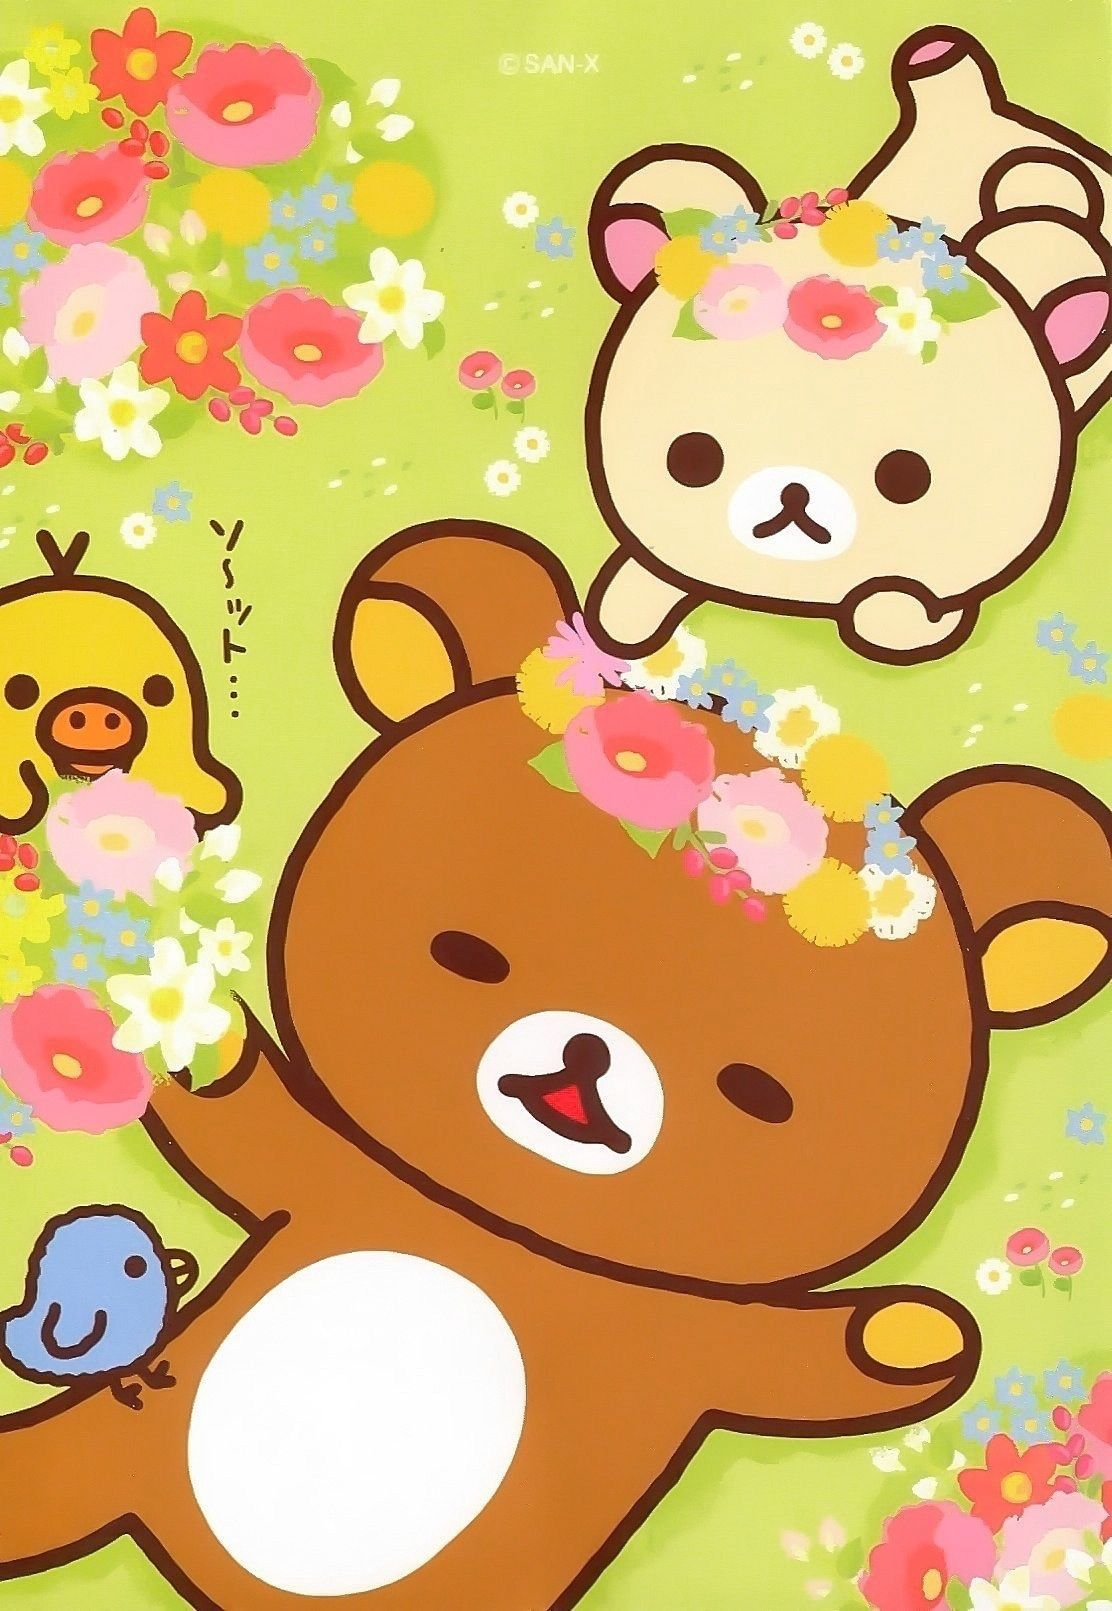 Hello Kitty Fall Iphone Wallpaper Pin By Laila 🎀 On Kawaii ️ Rilakkuma Wallpaper Kawaii